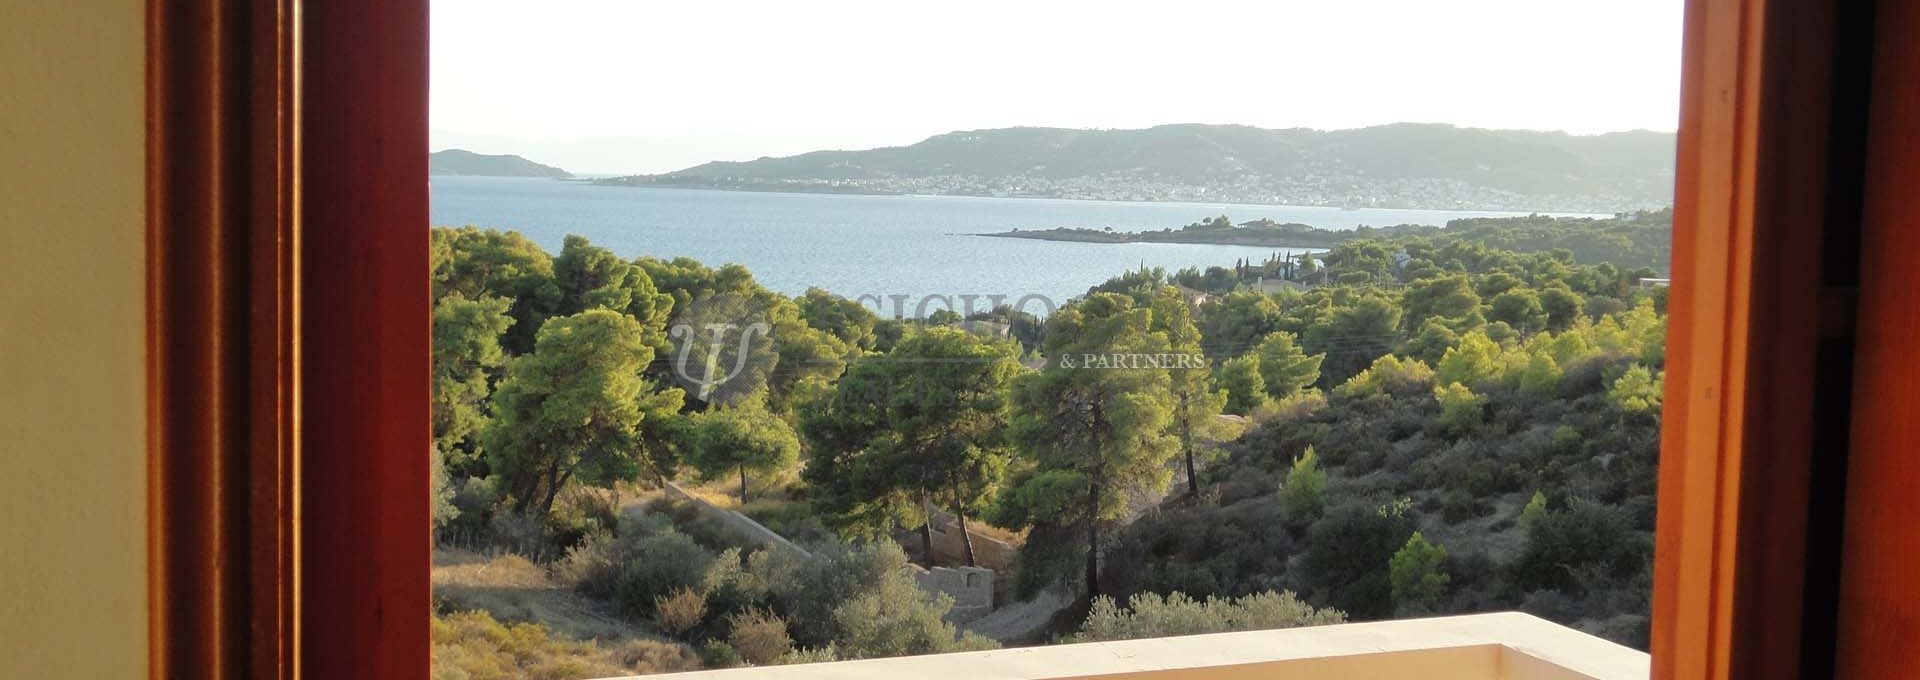 for_sale_house_120_square_meters_3_bedrooms_amazing_view_Agios_Amilianos_Greece (16)